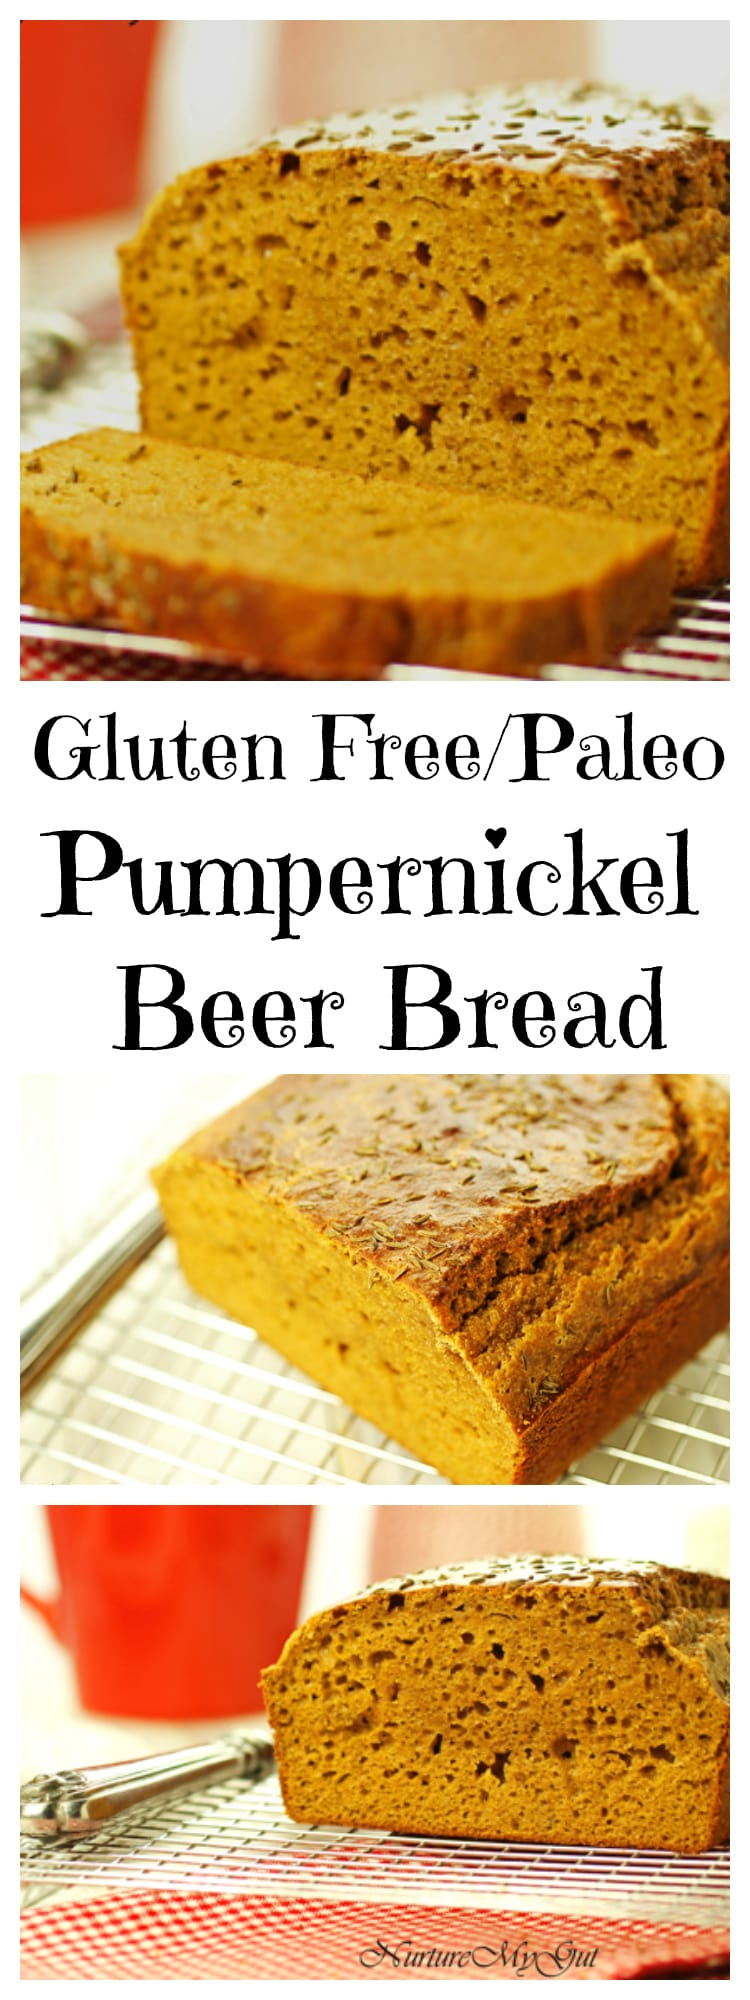 gluten free paleo pumpernickel beer bread